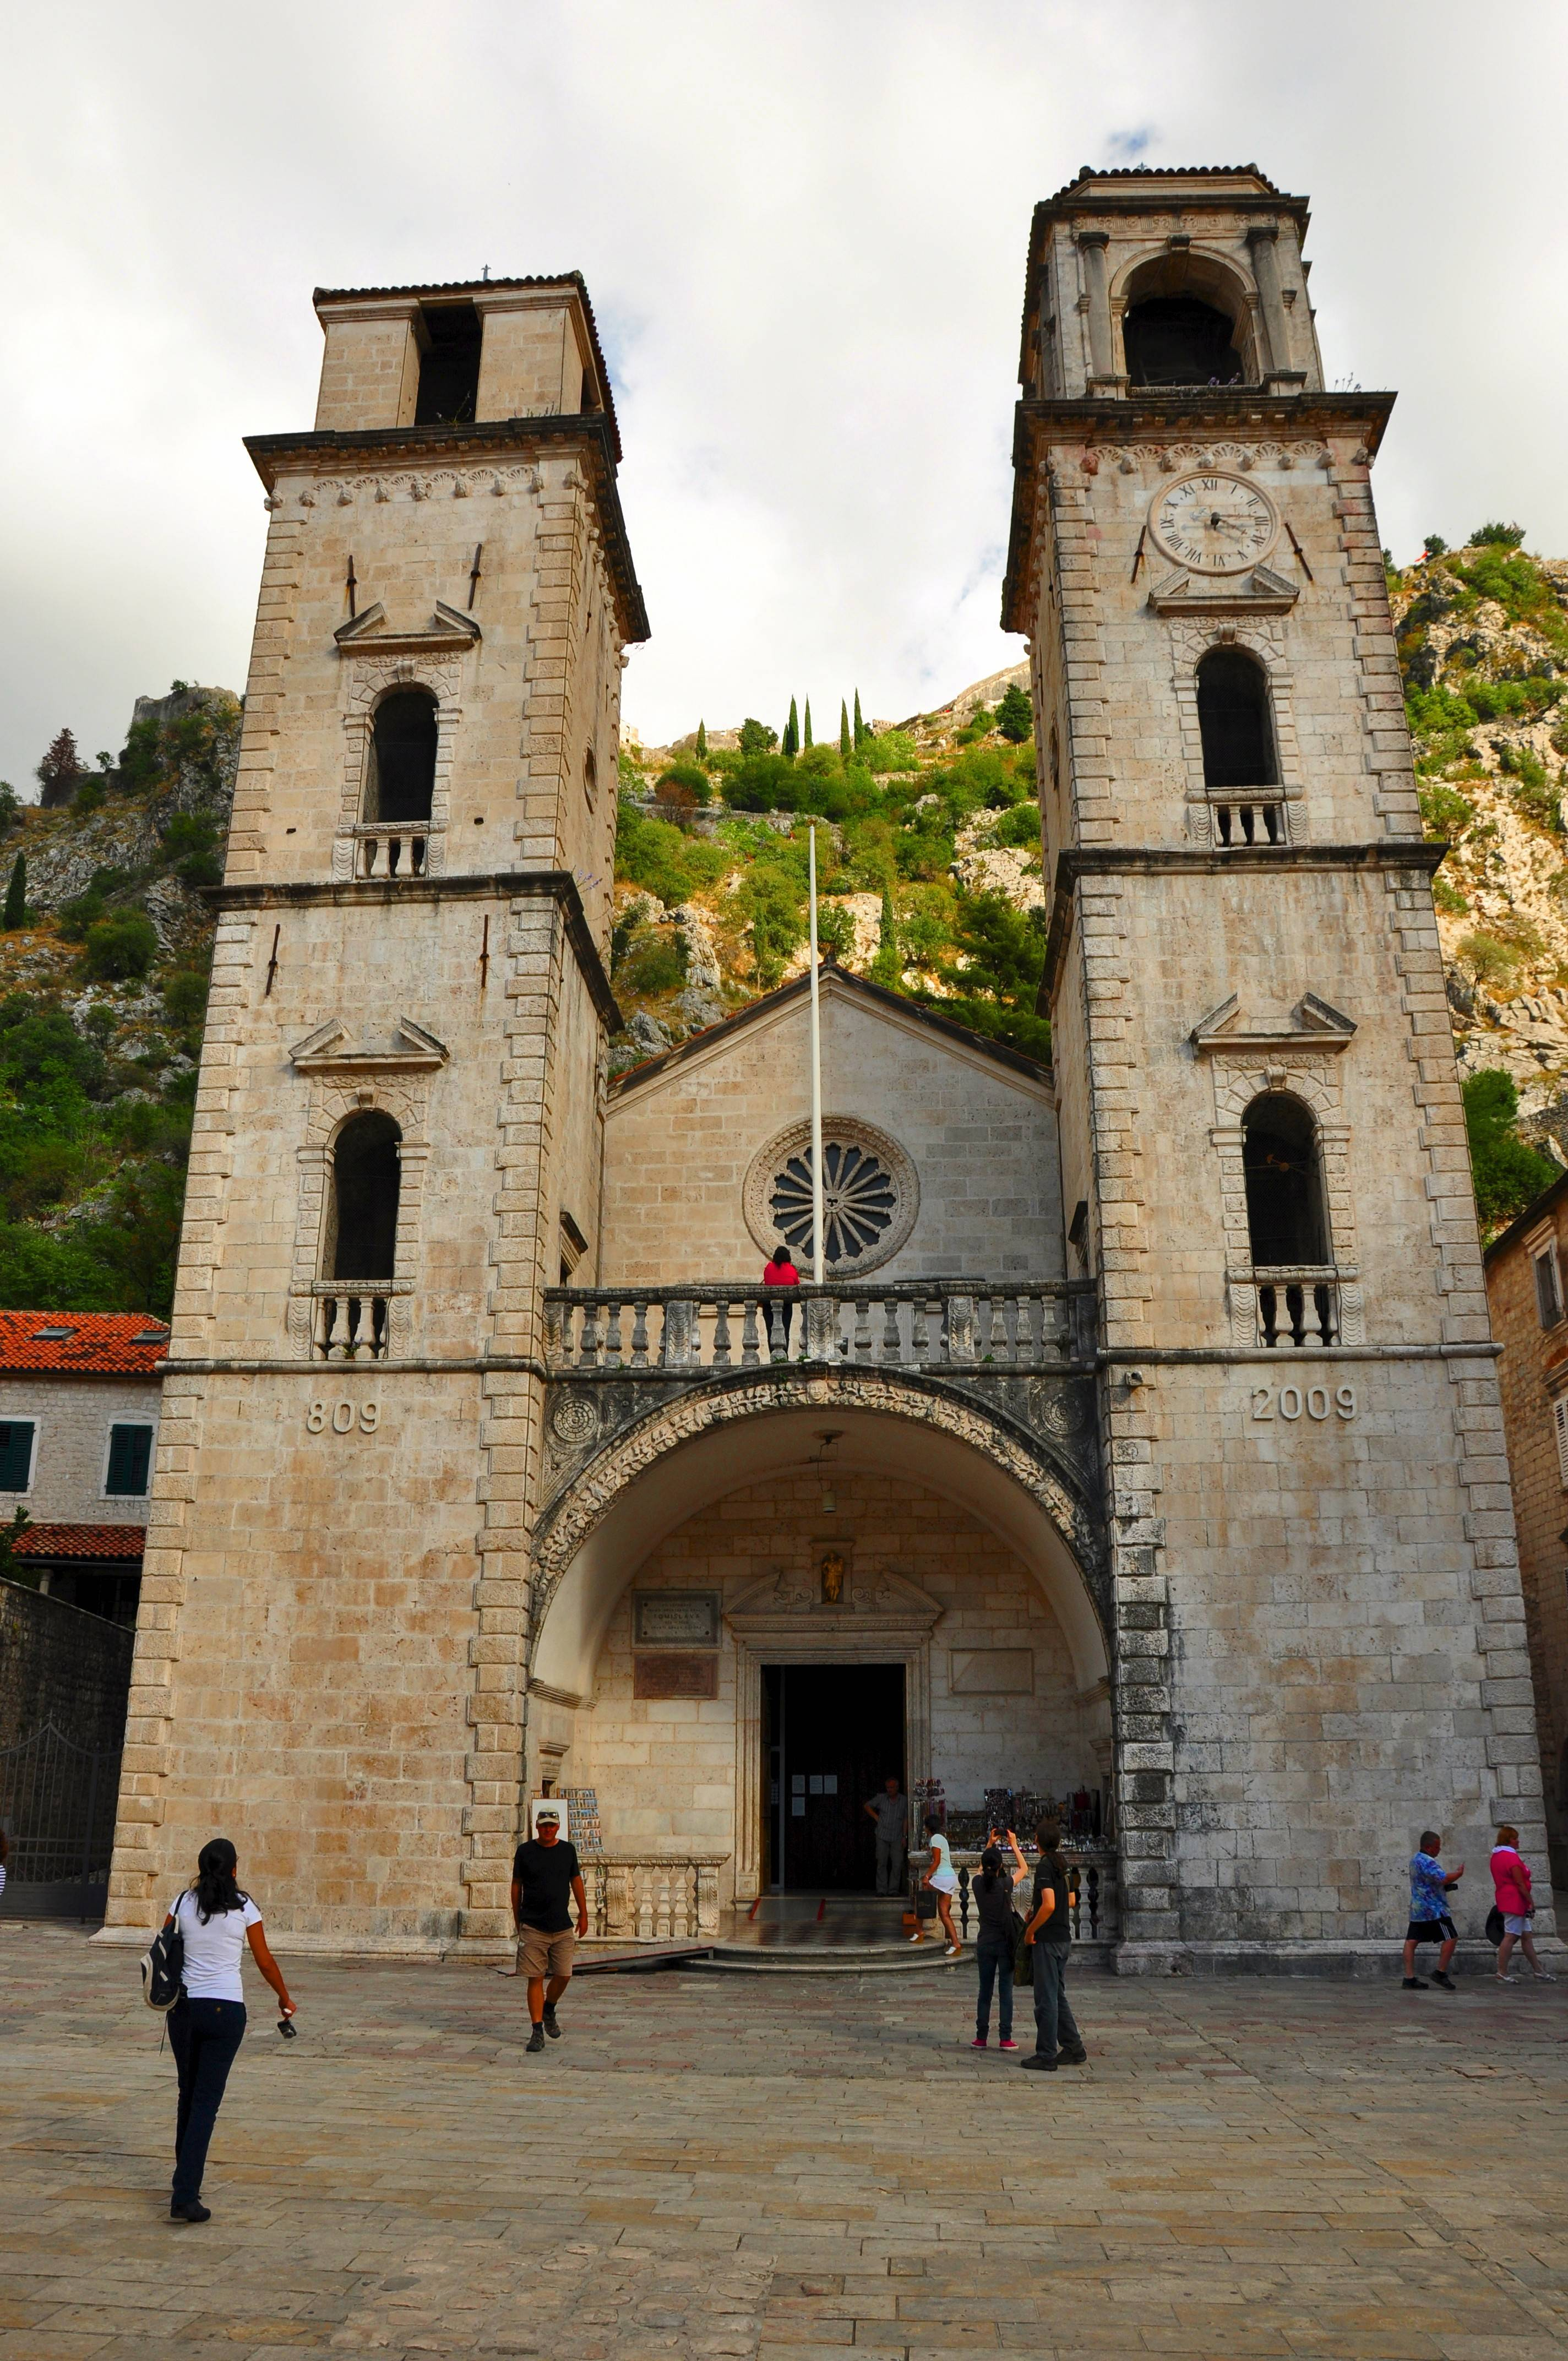 The Cathedral of St. Tryphon was built in the 12th century and holds the bones of the patron saint of Kotor, Montenegro.